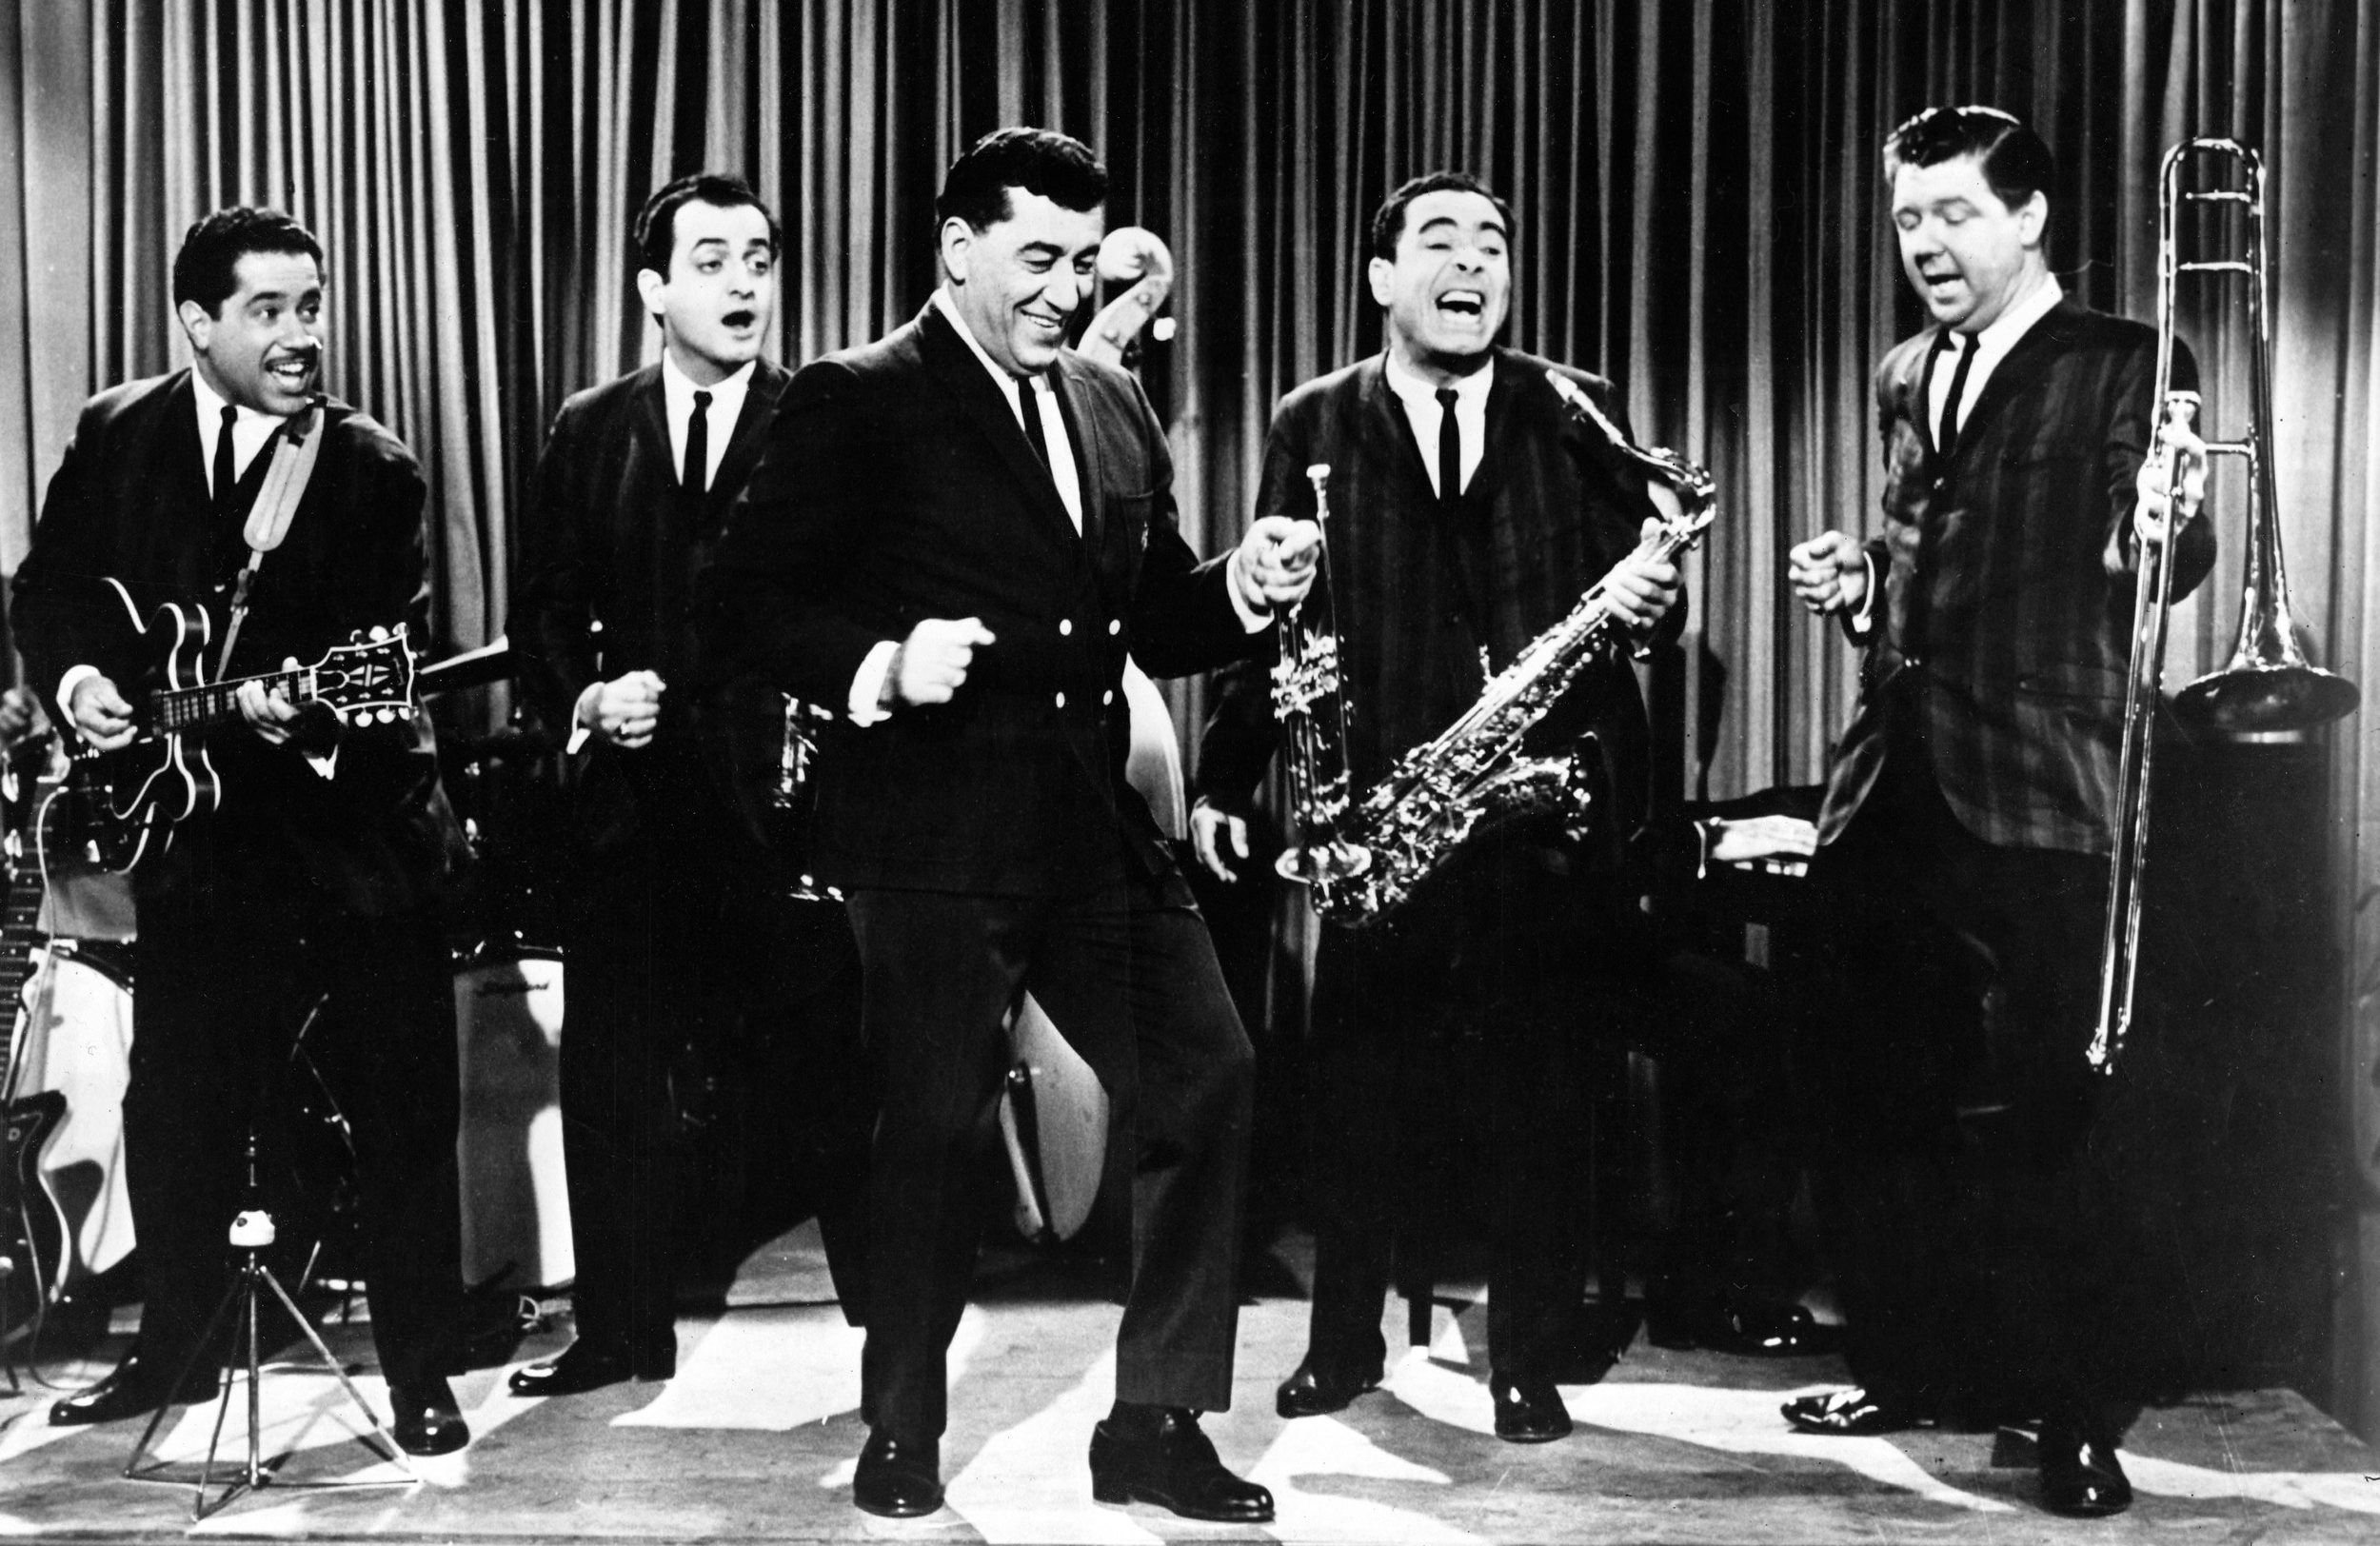 Louis Prima, Sam Butera and the Witnesses image courtesy of Louis Prima, Jr.